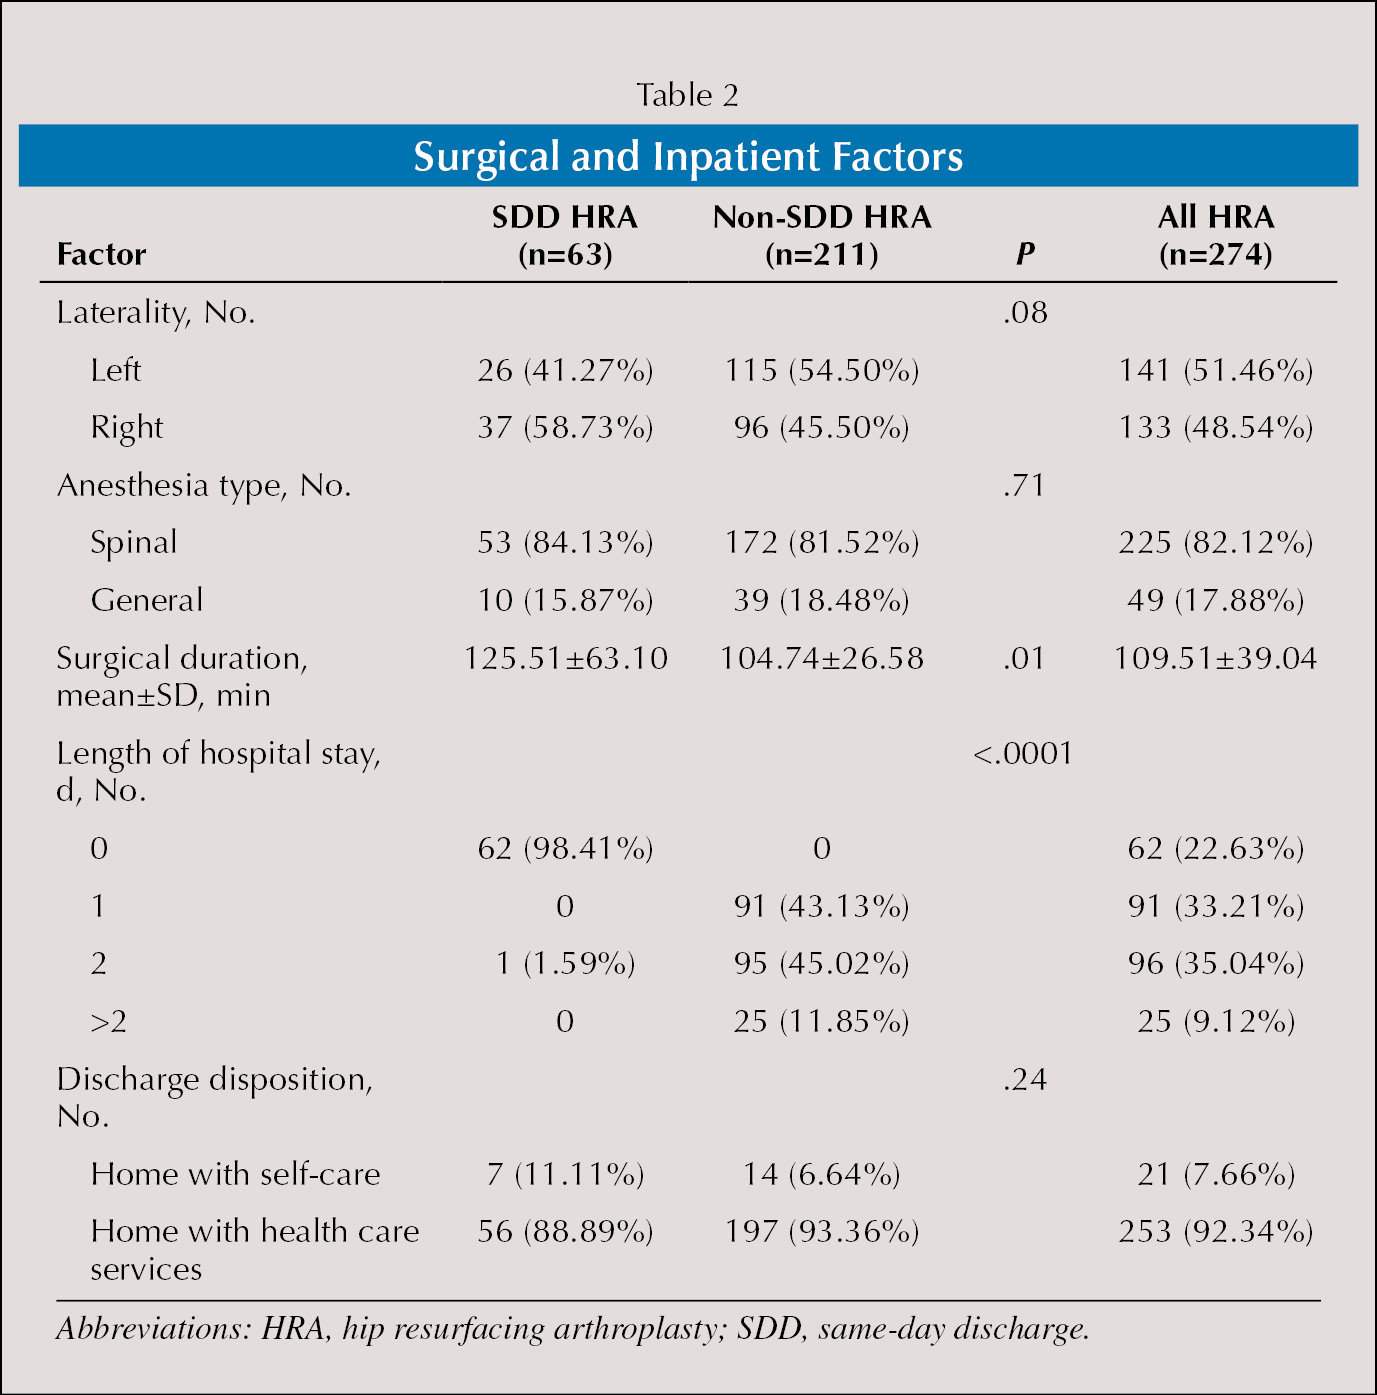 Surgical and Inpatient Factors